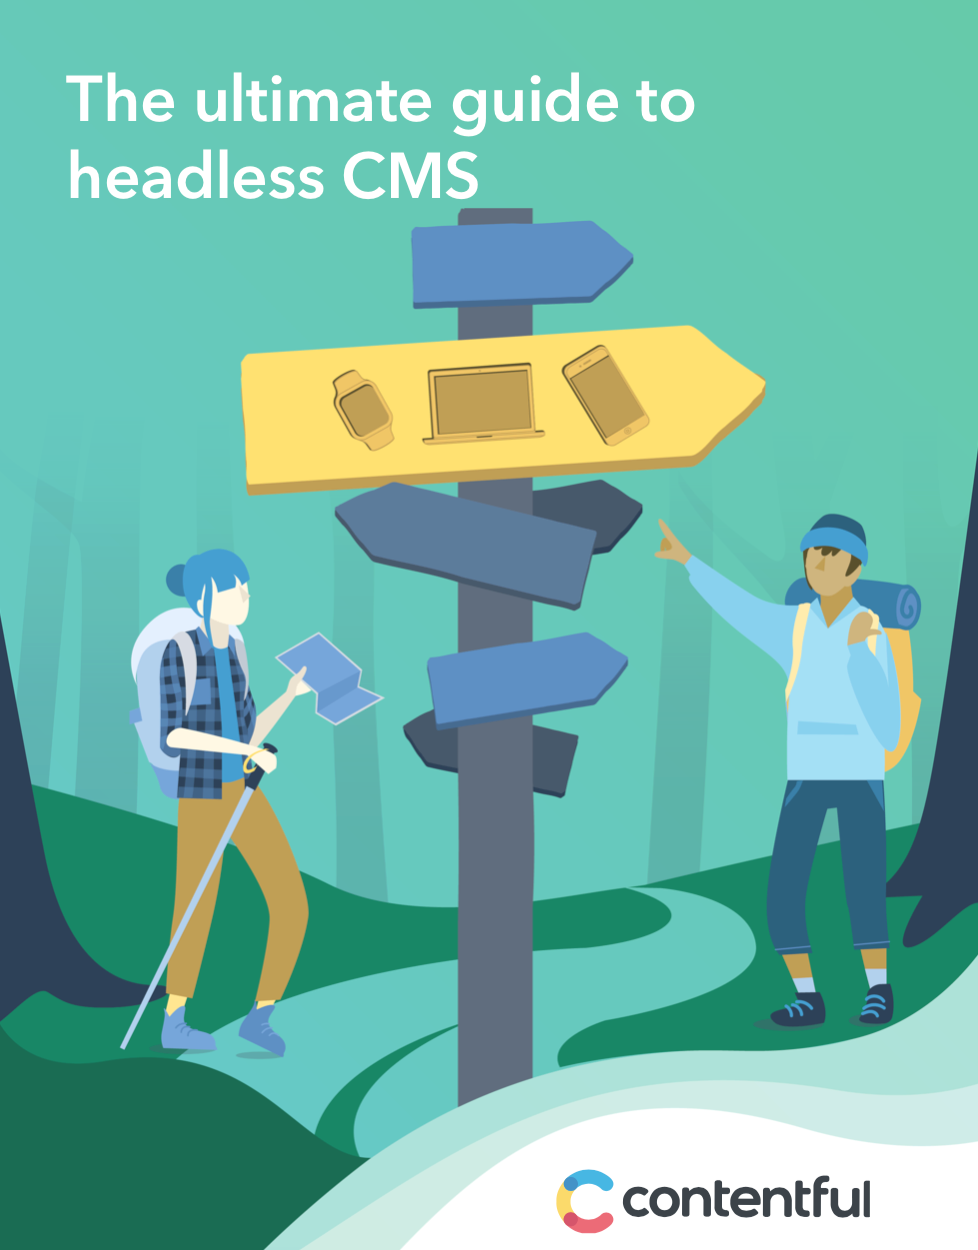 Whitepaper: The ultimate guide to headless CMS